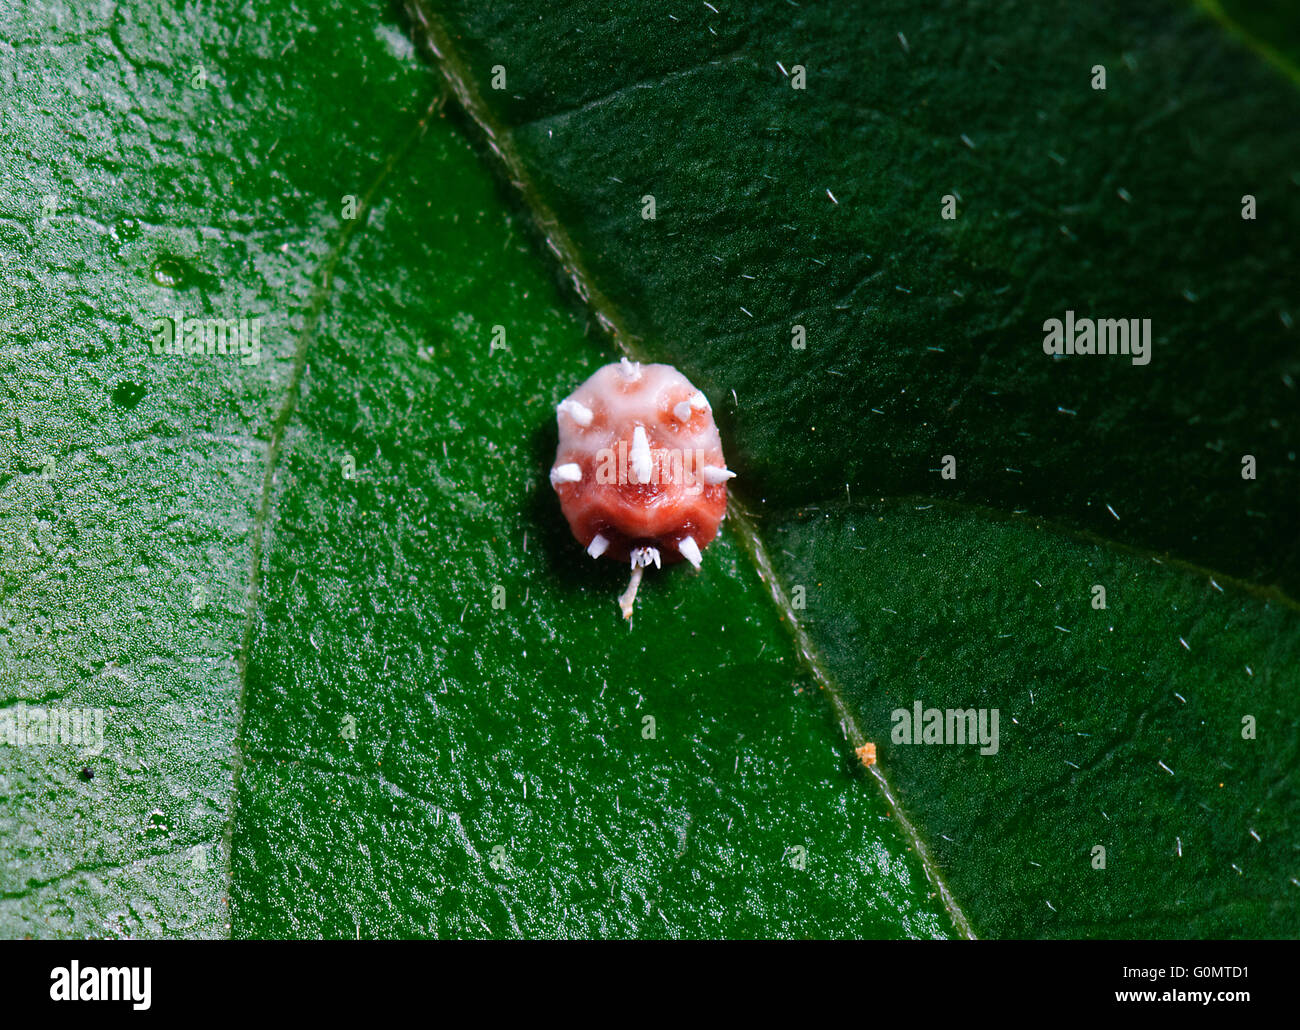 Pink Wax Scale Insect, Ceroplastes rubens, New South Wales, Australia - Stock Image